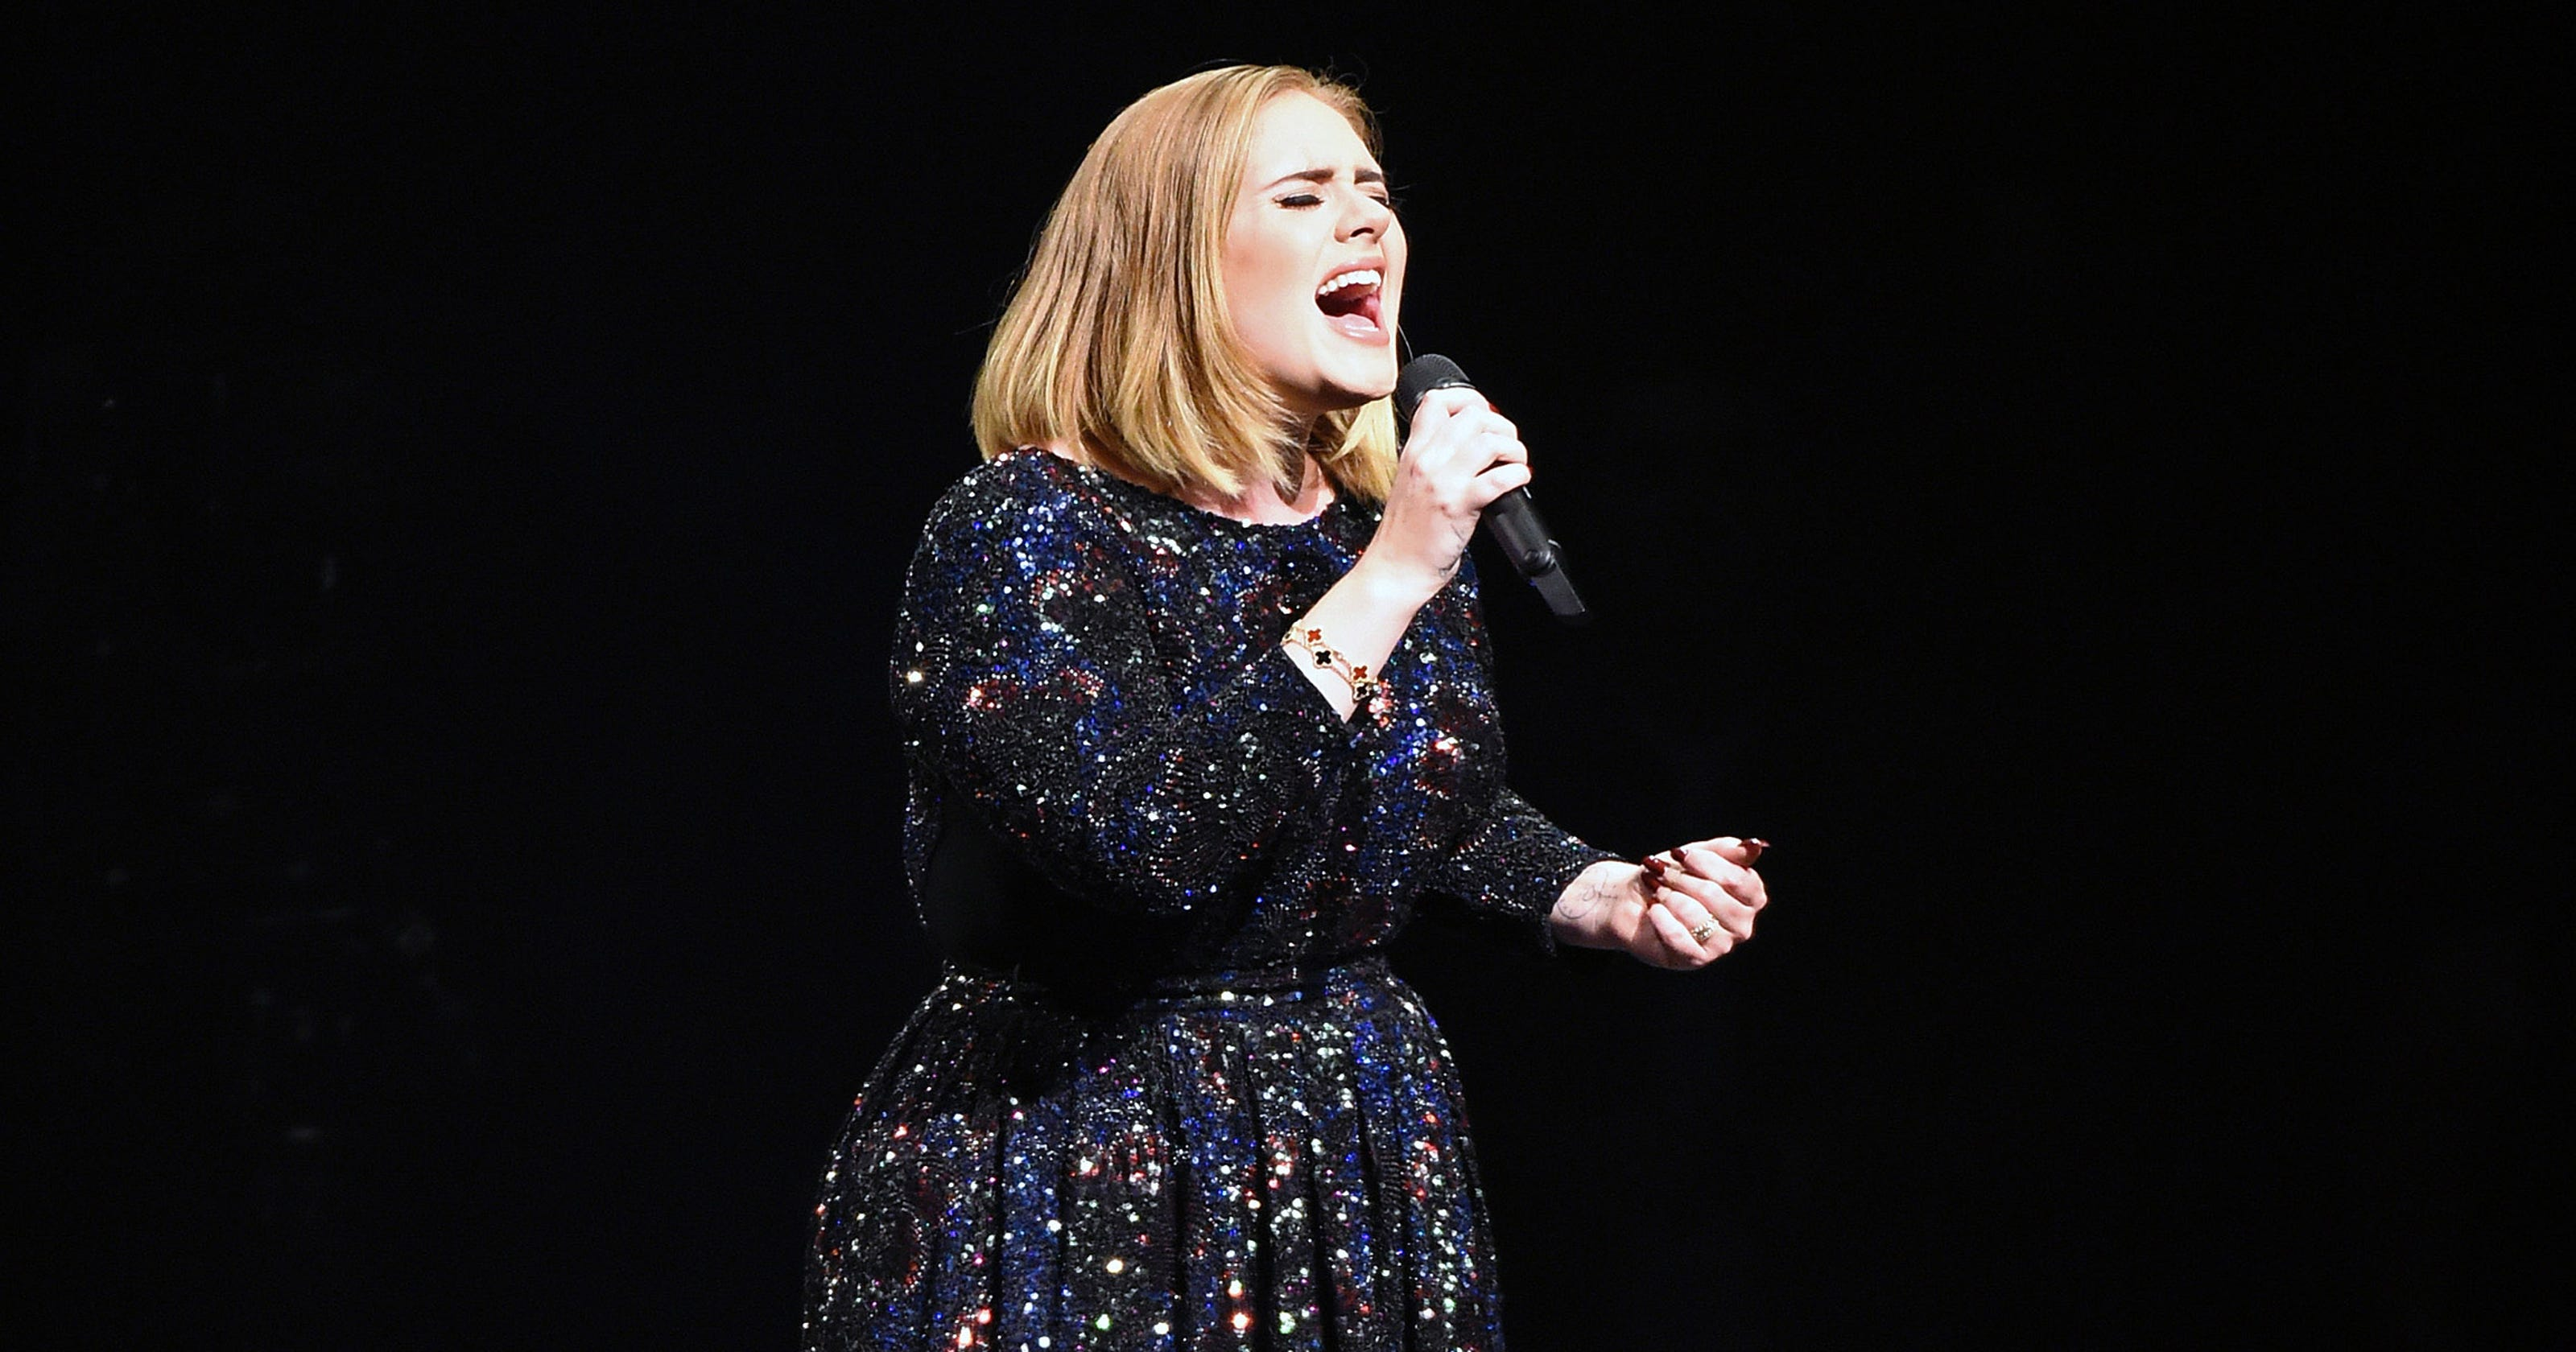 November concerts in Phoenix: Adele, Lauryn Hill, Lindsey